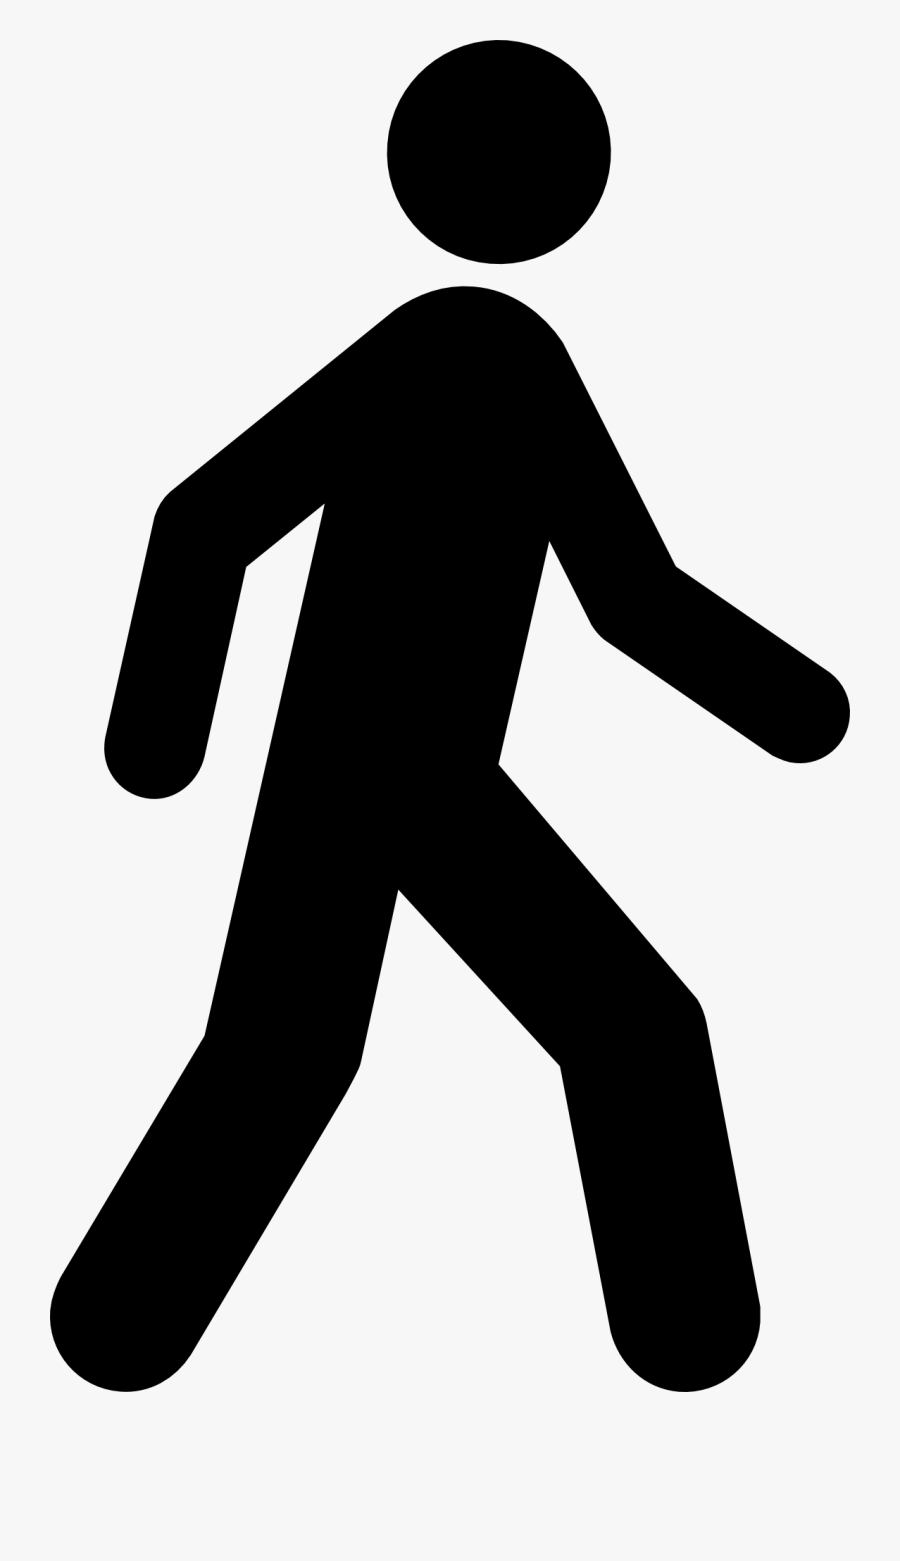 Clip Library Download Hiking Drawing Man - Walking Stick Figure Png, Transparent Clipart